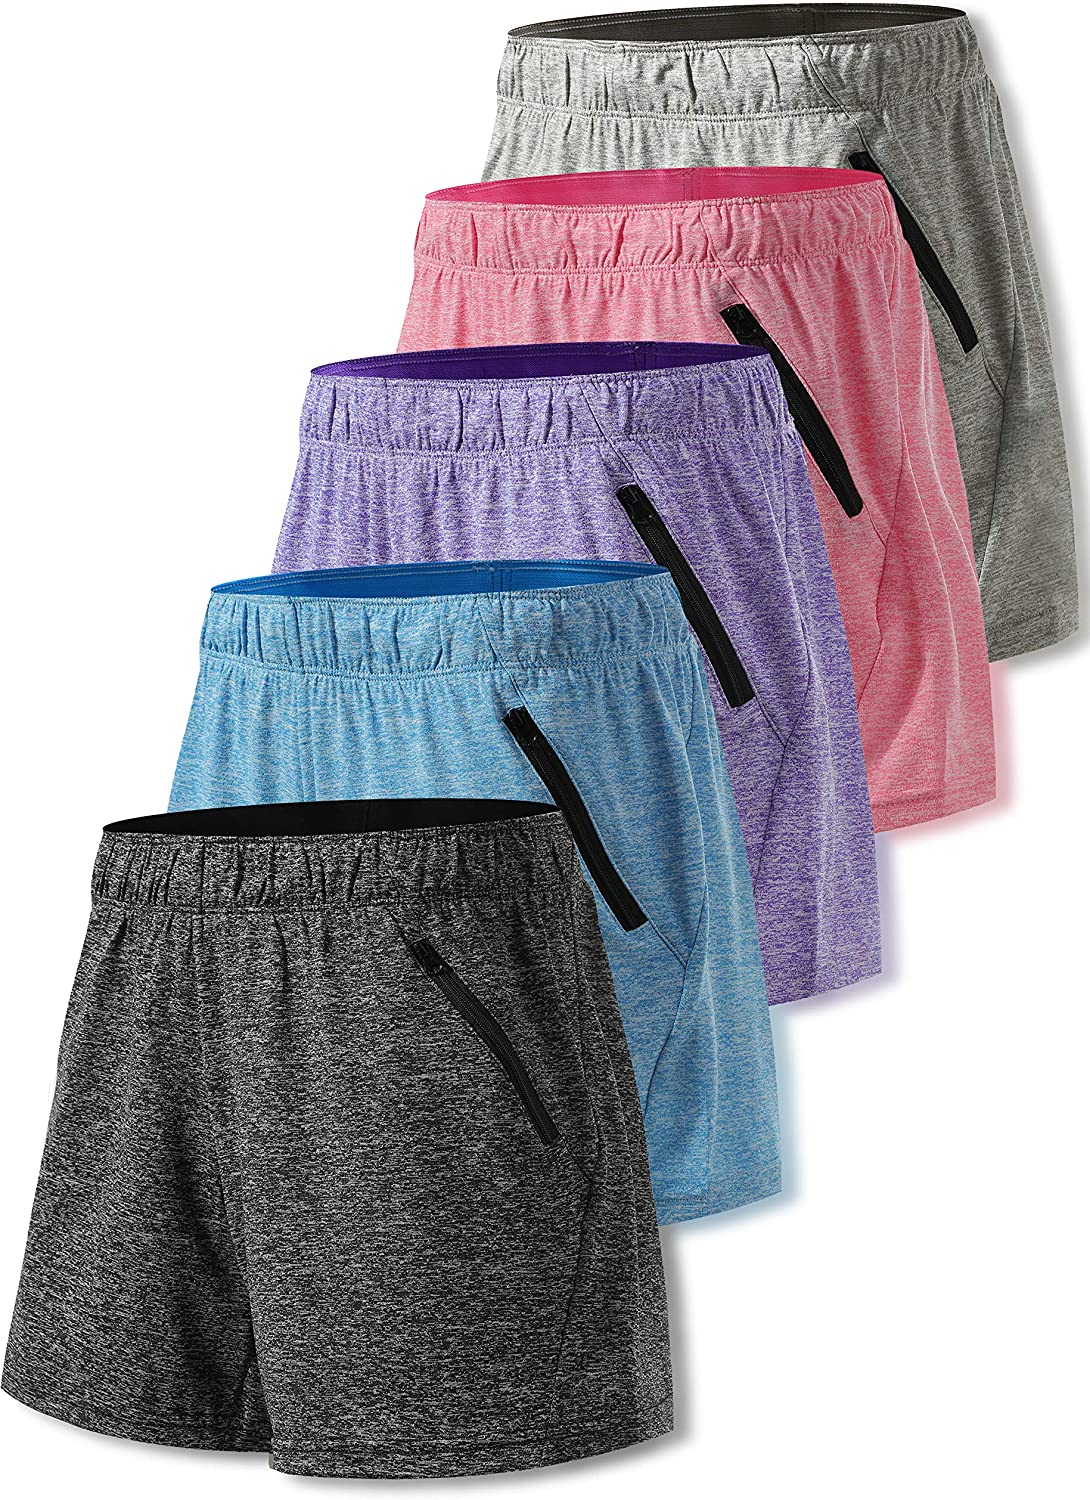 Liberty Imports Pack of 5 Women's Quick Dry Heather Yoga Training Shorts with Zipper Pockets